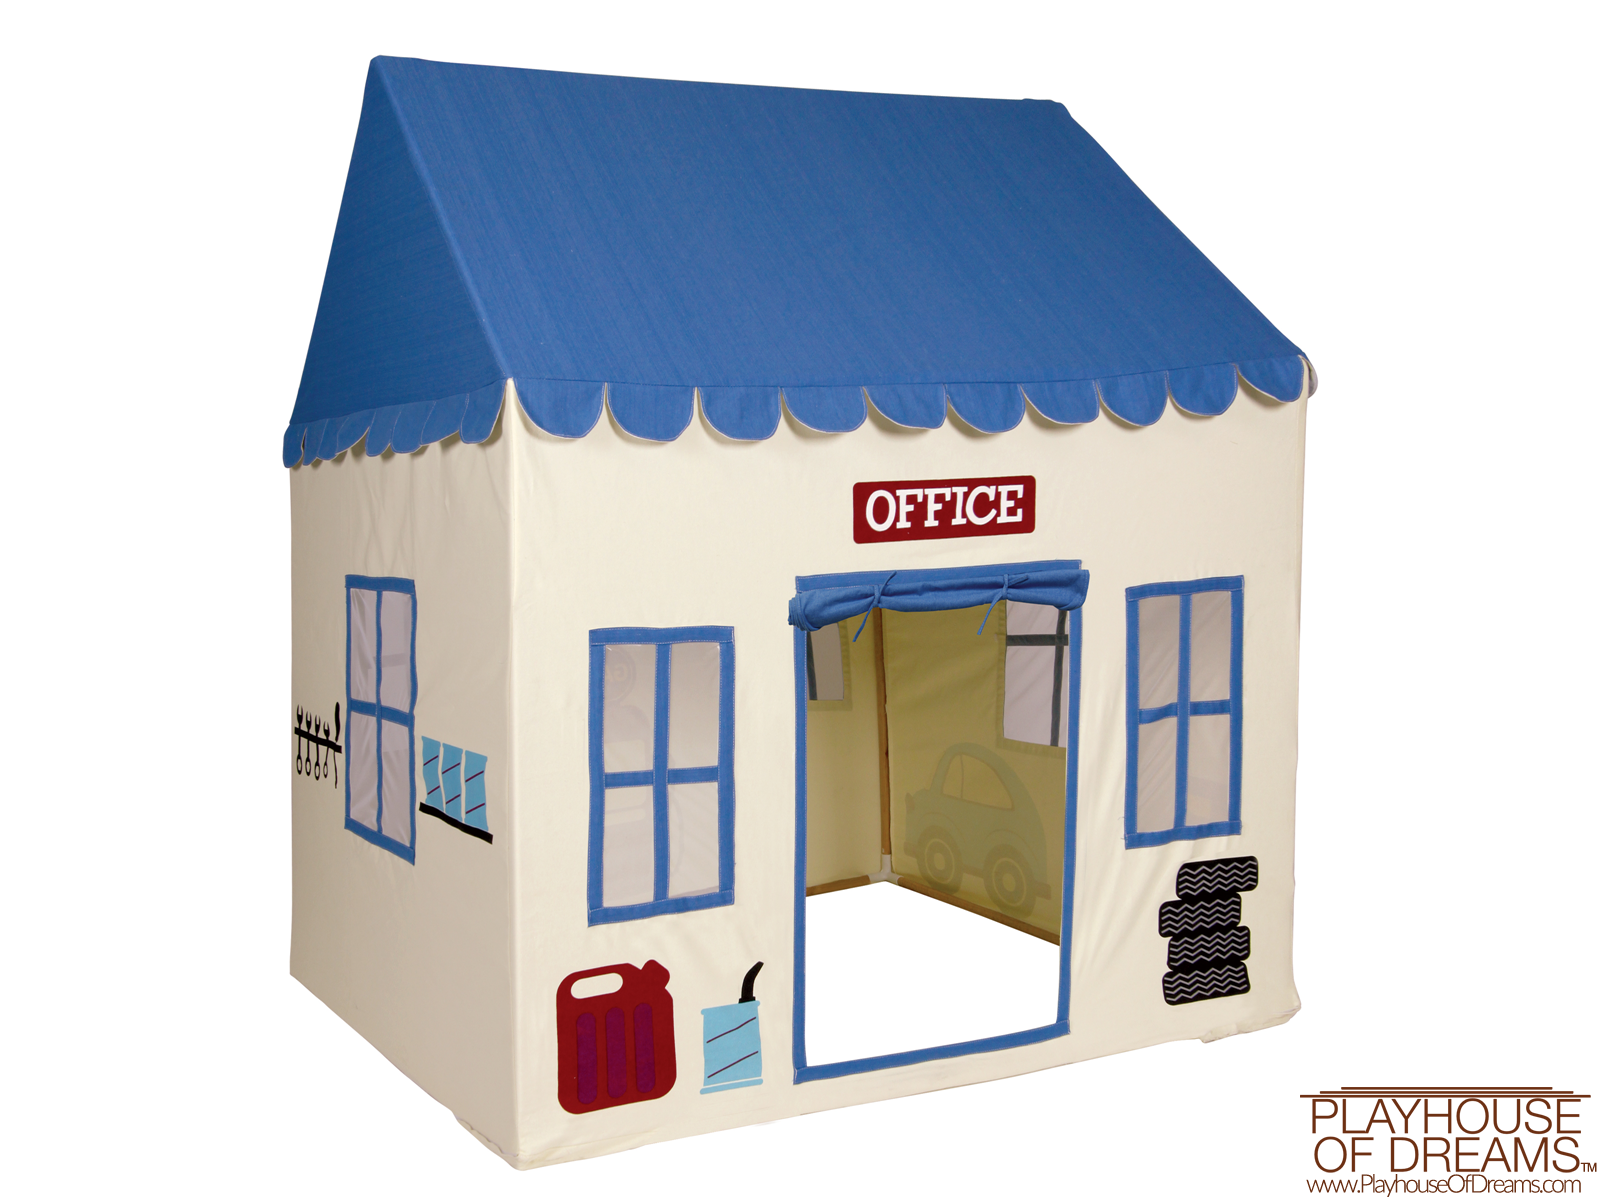 My 1st Garage Play House - Pacific Play Tent - Playhouse of Dreams  - 4